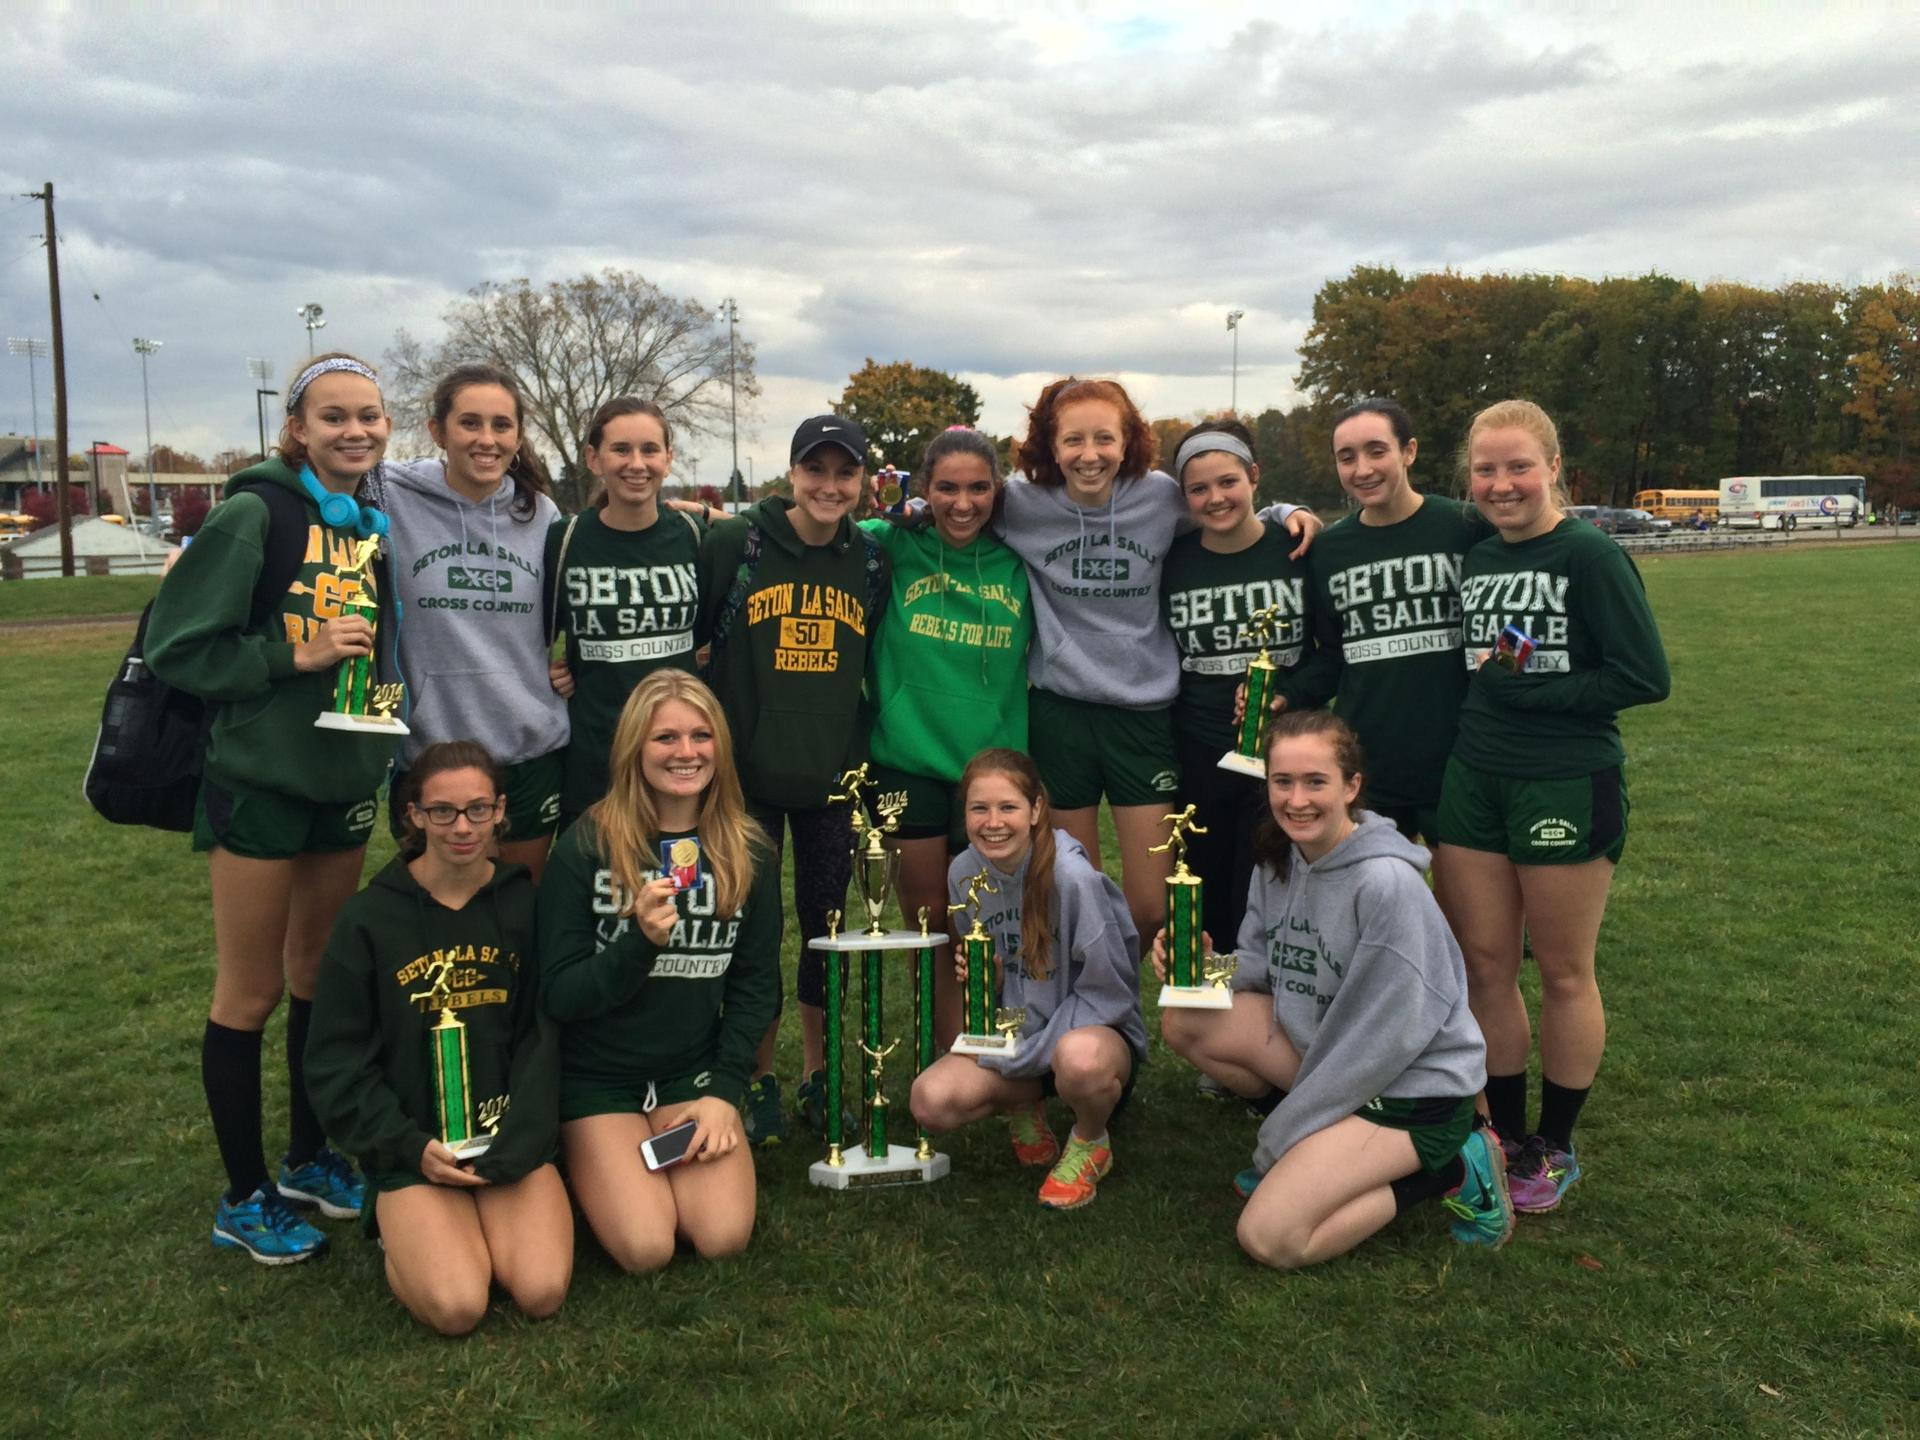 Cross Country Team after winning WPIAL Championship